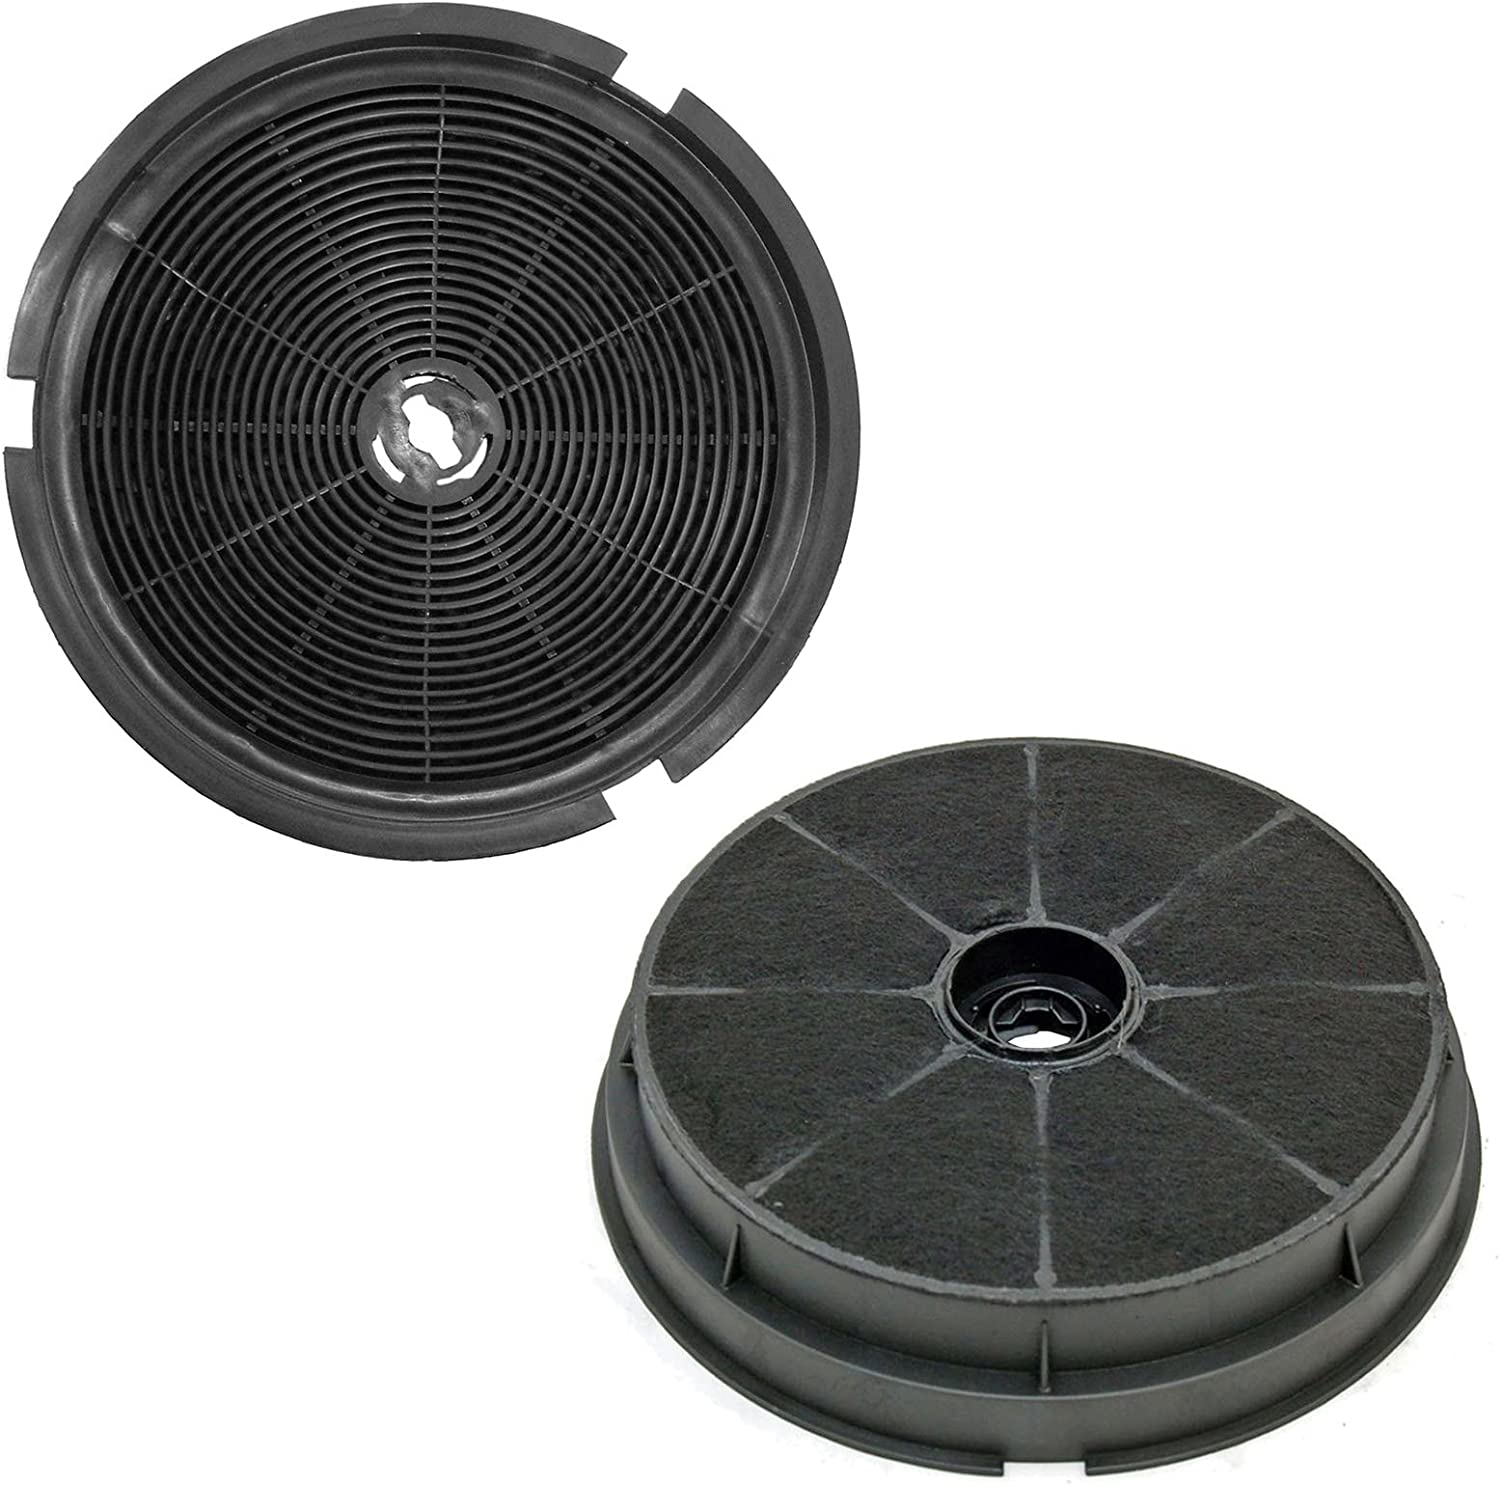 SPARES2GO Carbon Charcoal Vent Filters for Leisure 1K2BP H100PK CA1K2BP cm Cooker Extractor Hoods Pack of 2